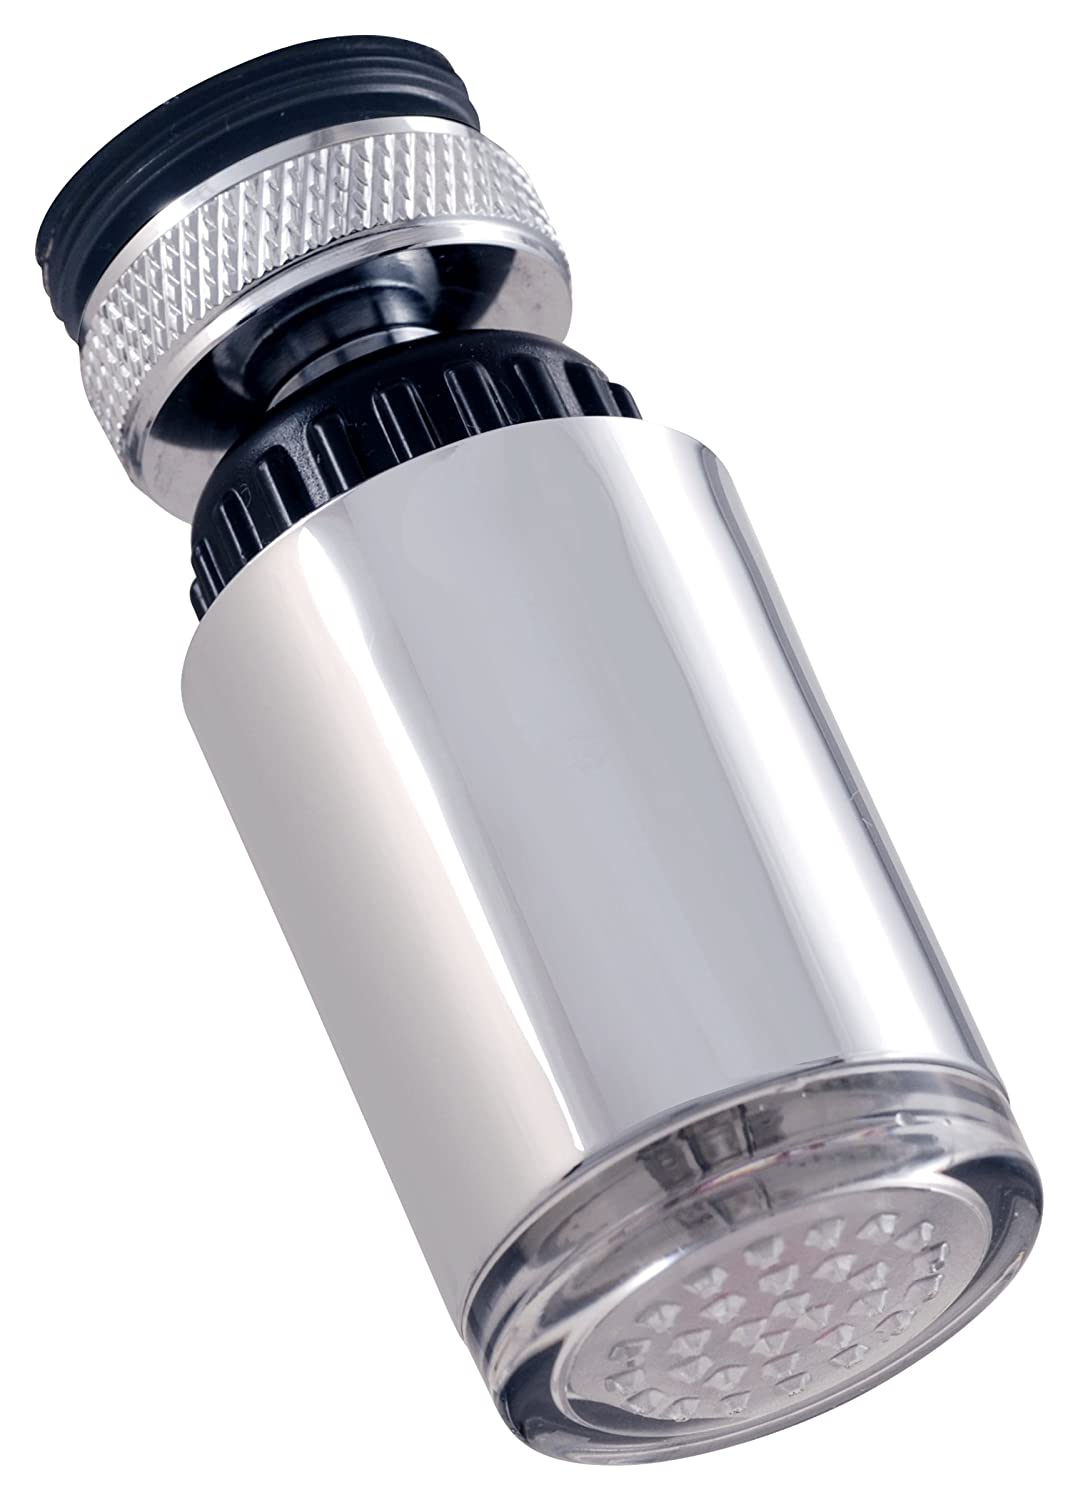 LDR 530 2165TL LED Faucet Aerator Red to Blue Temperature Indicator ...